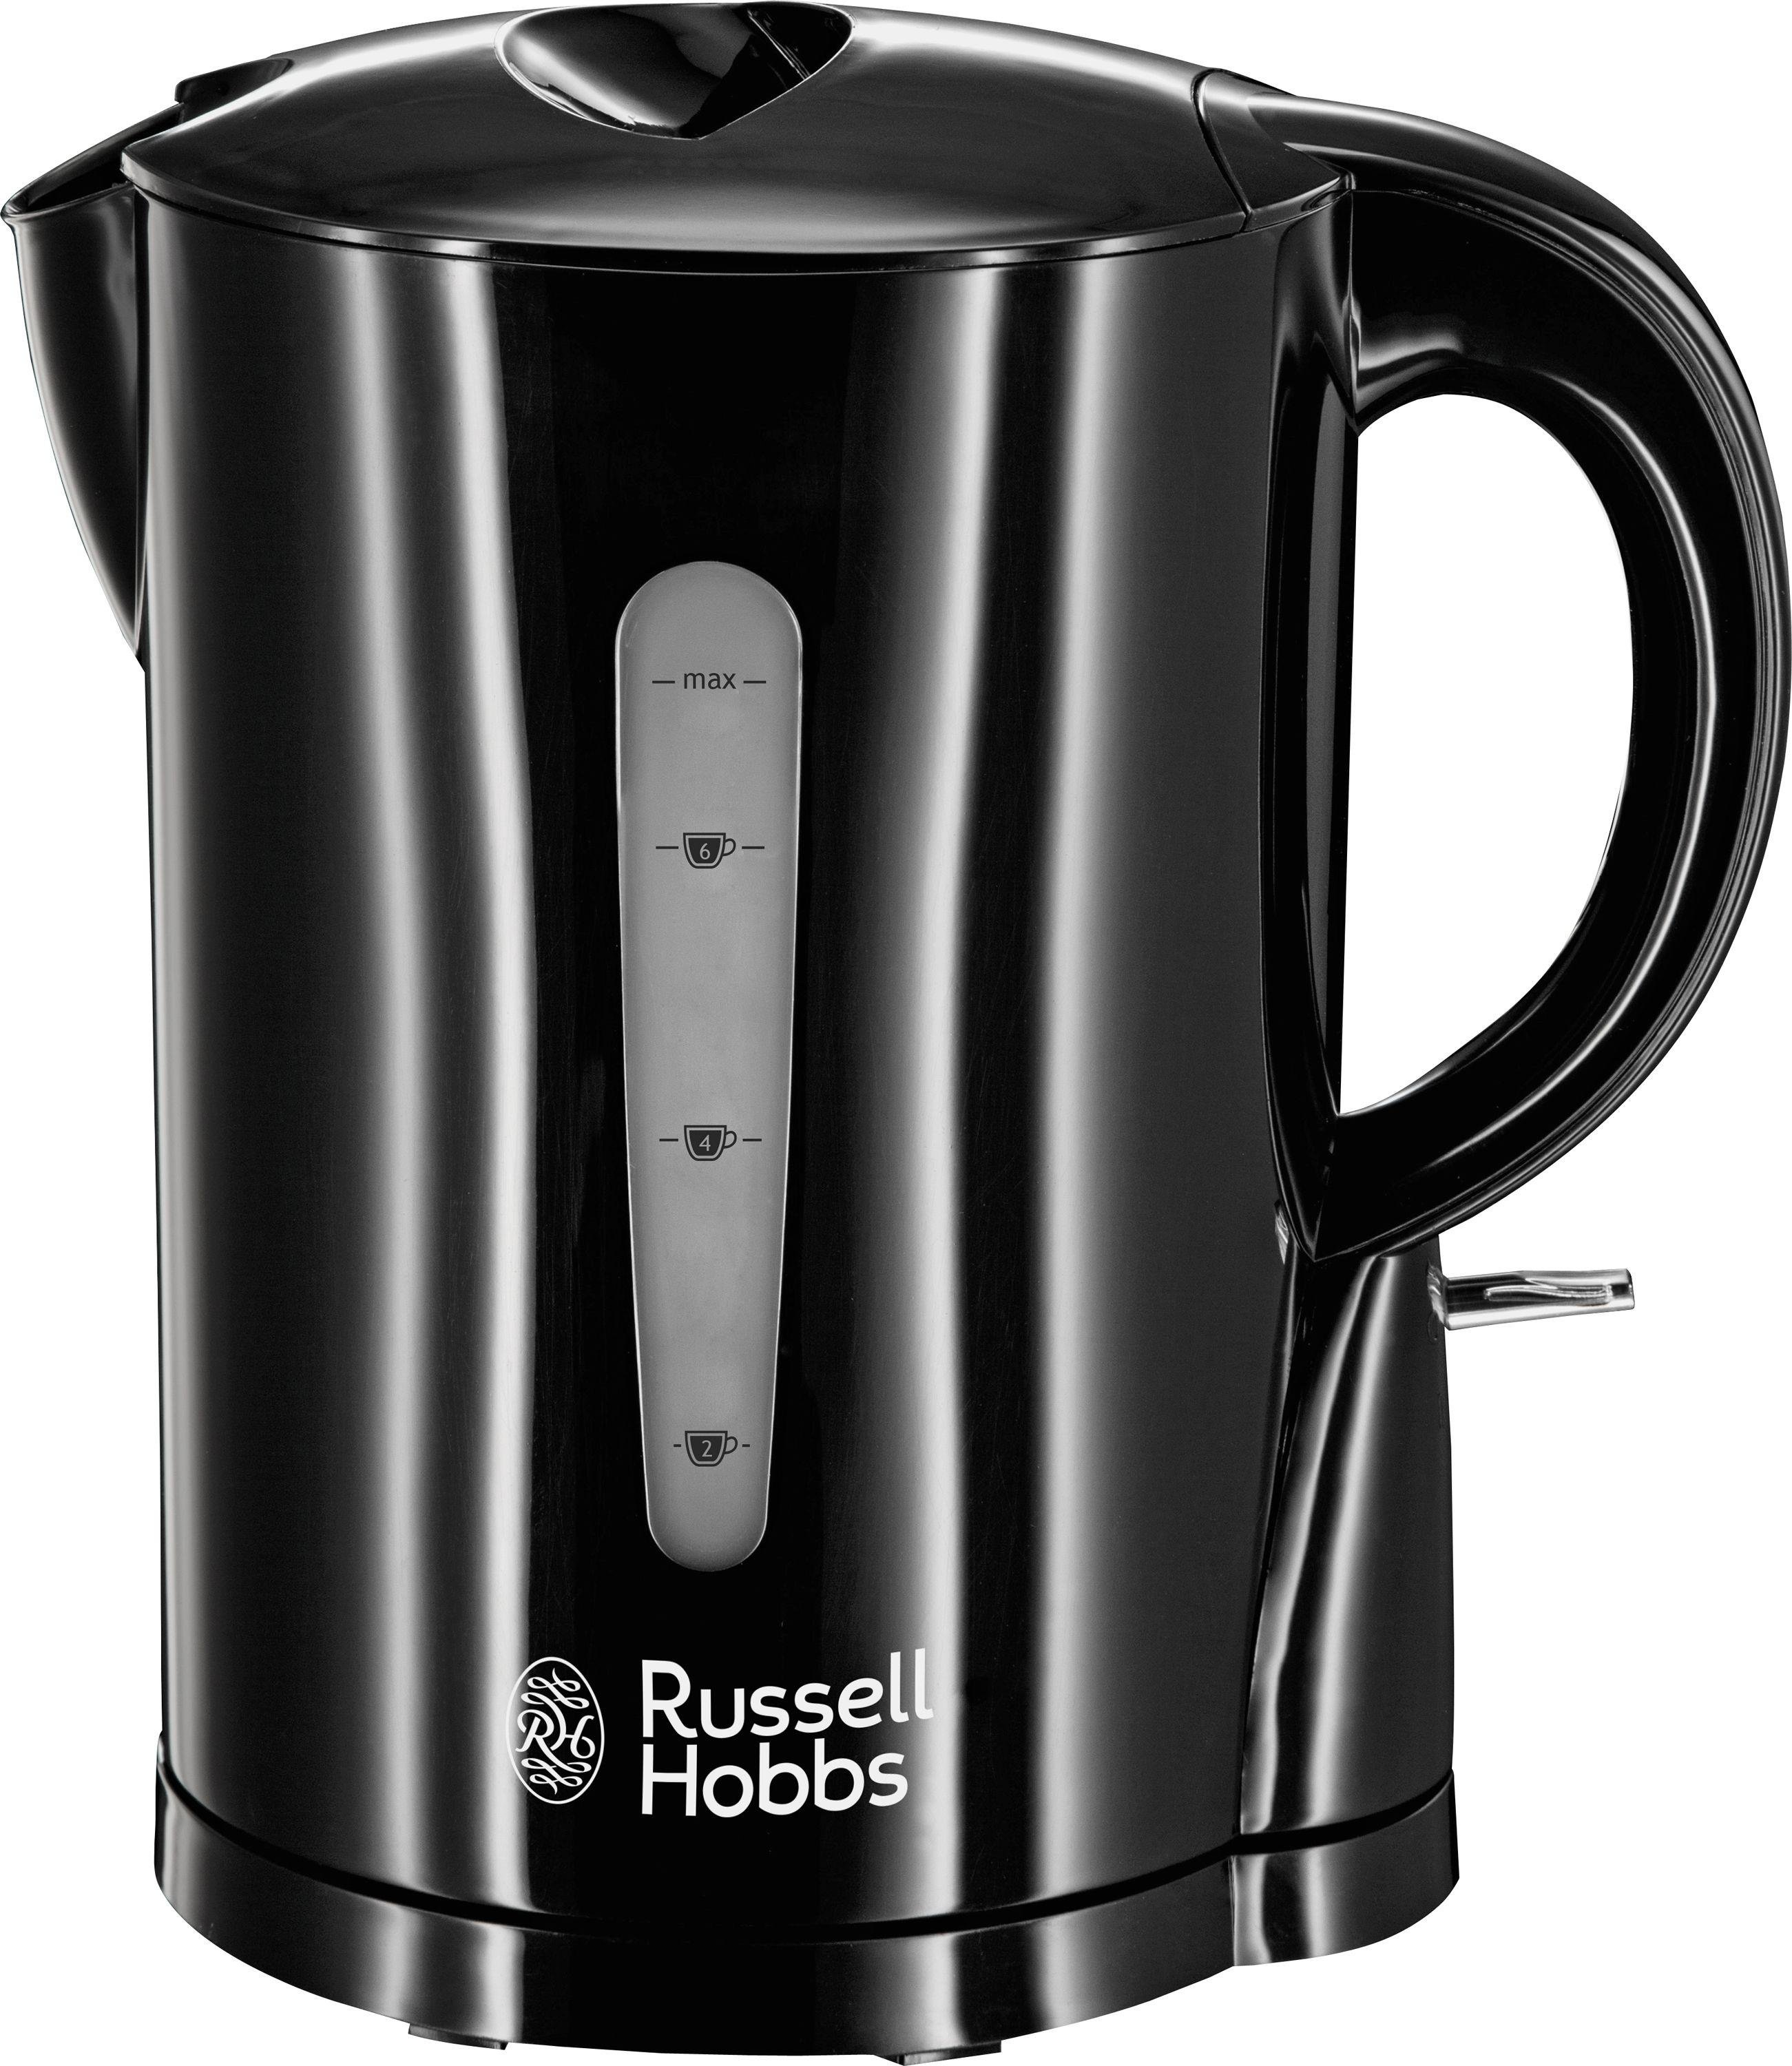 russell hobbs kettle find it for less. Black Bedroom Furniture Sets. Home Design Ideas